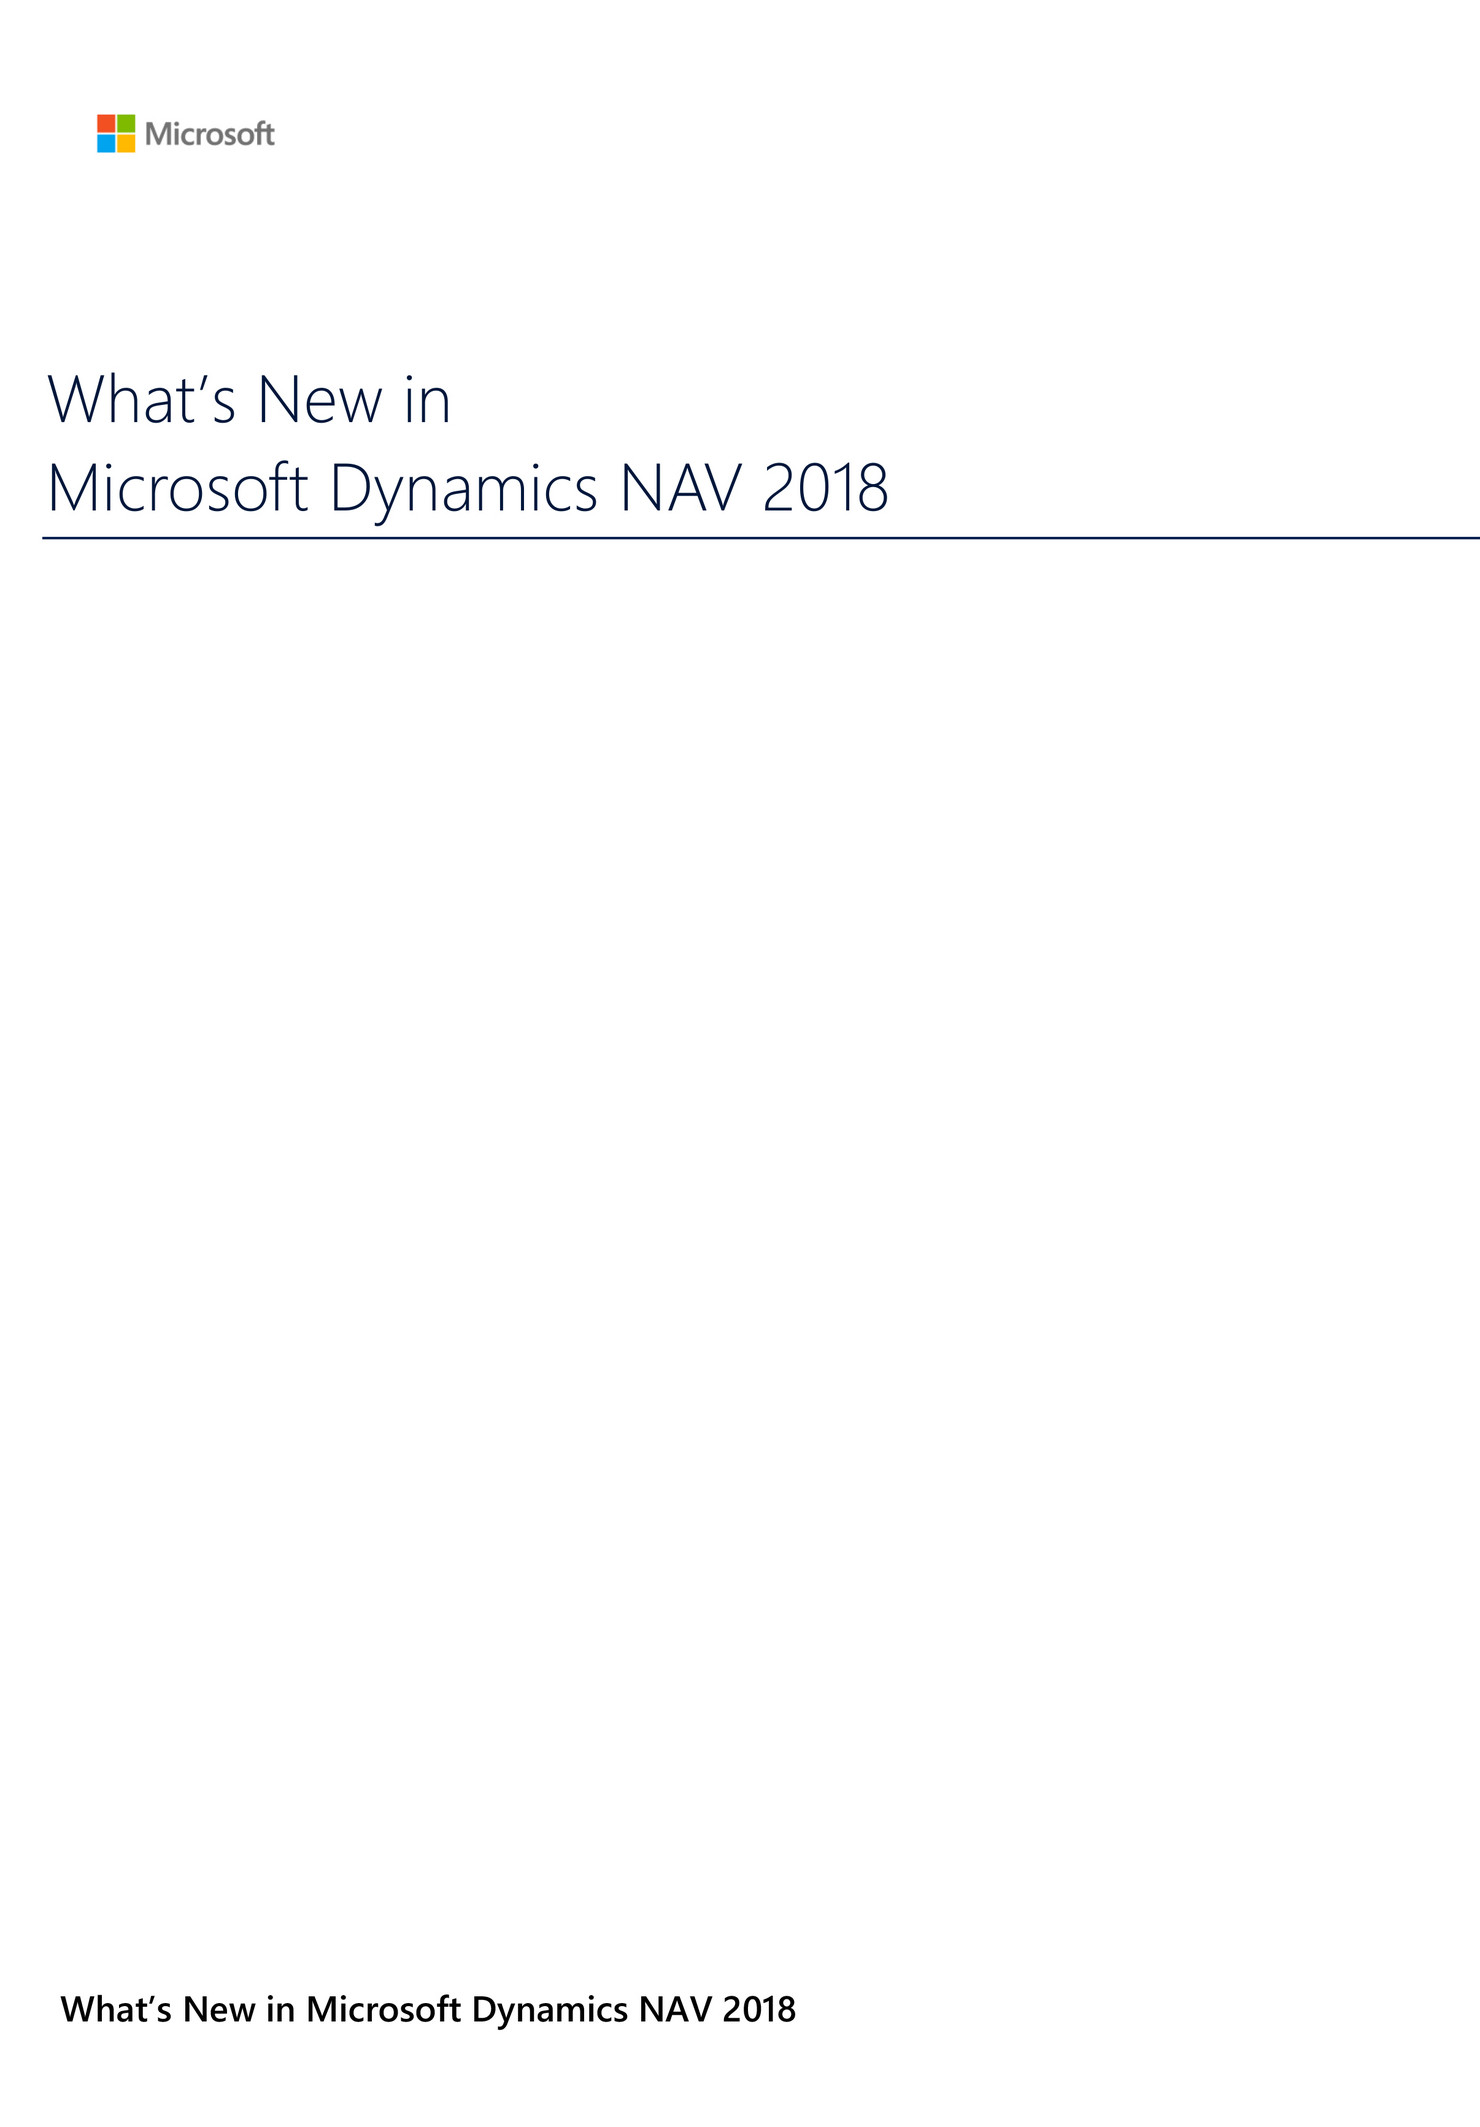 New ERP version: Microsoft Dynamics NAV 2018 officially launched